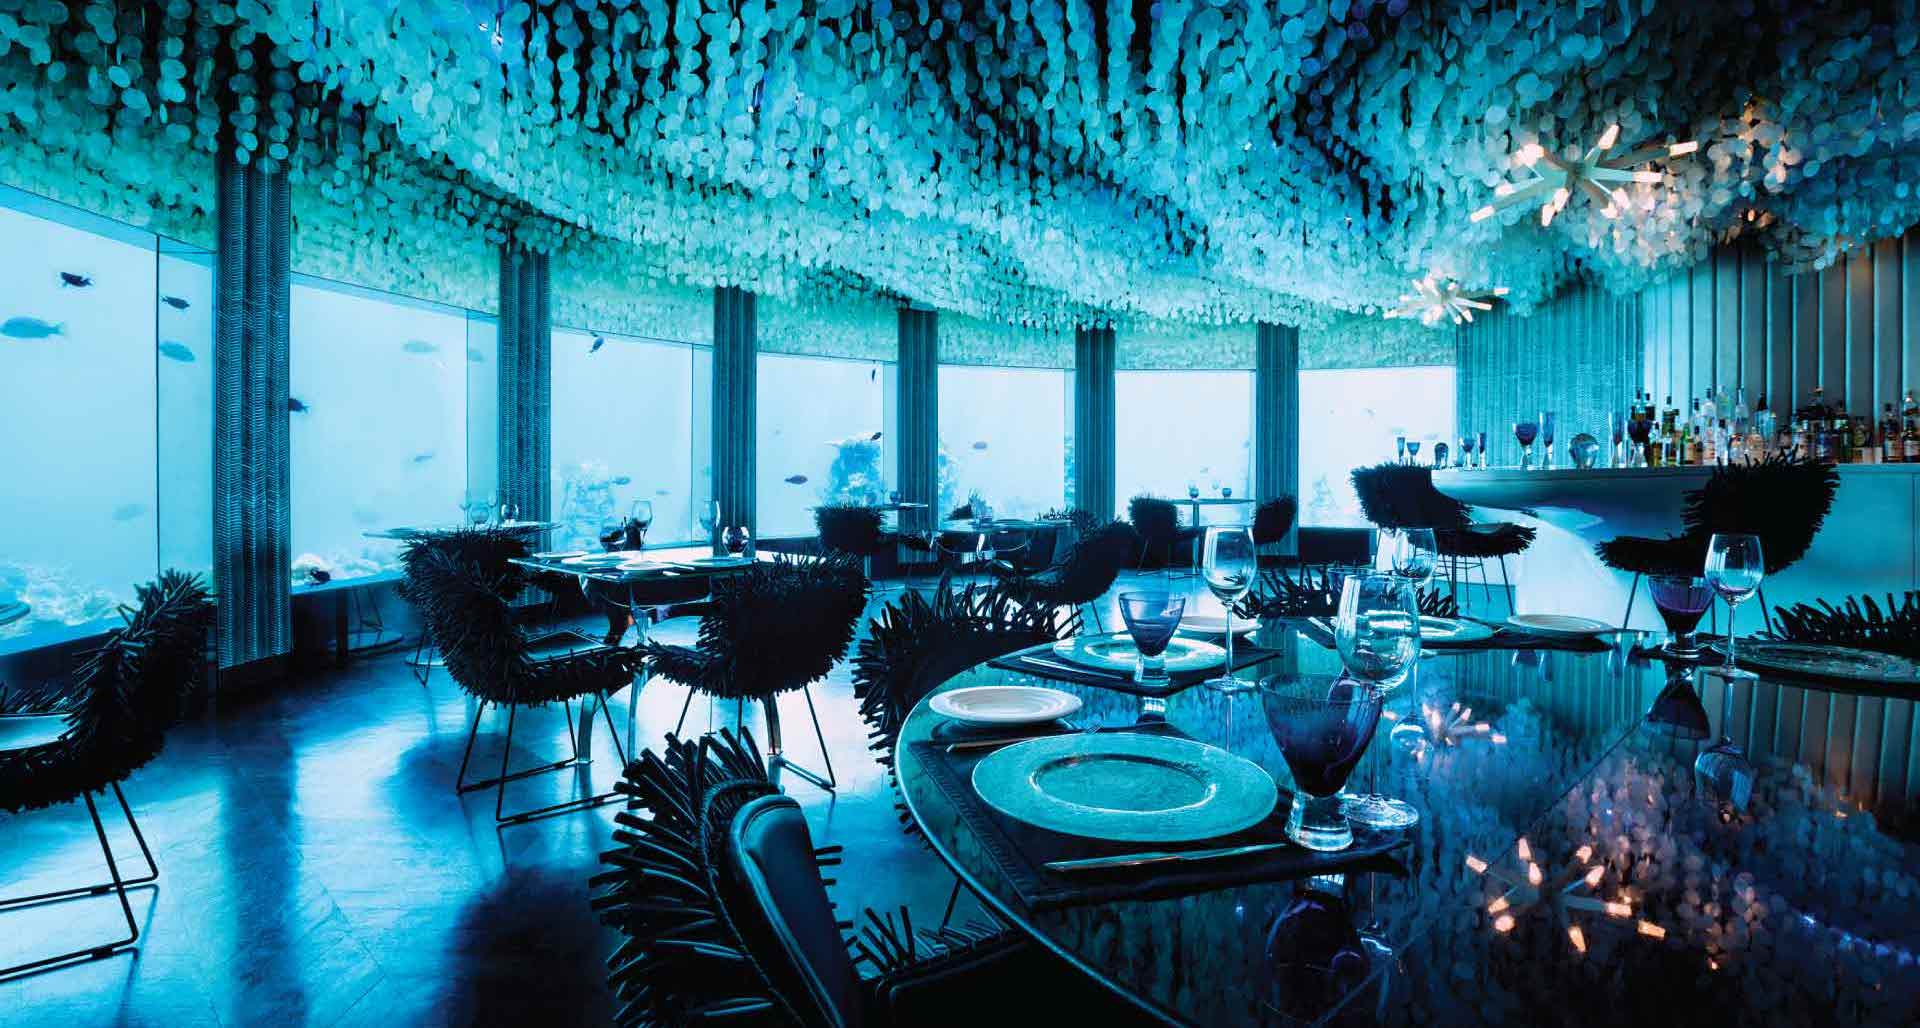 The 50 Most Instagrammable Restaurants In The World Big 7 Travel